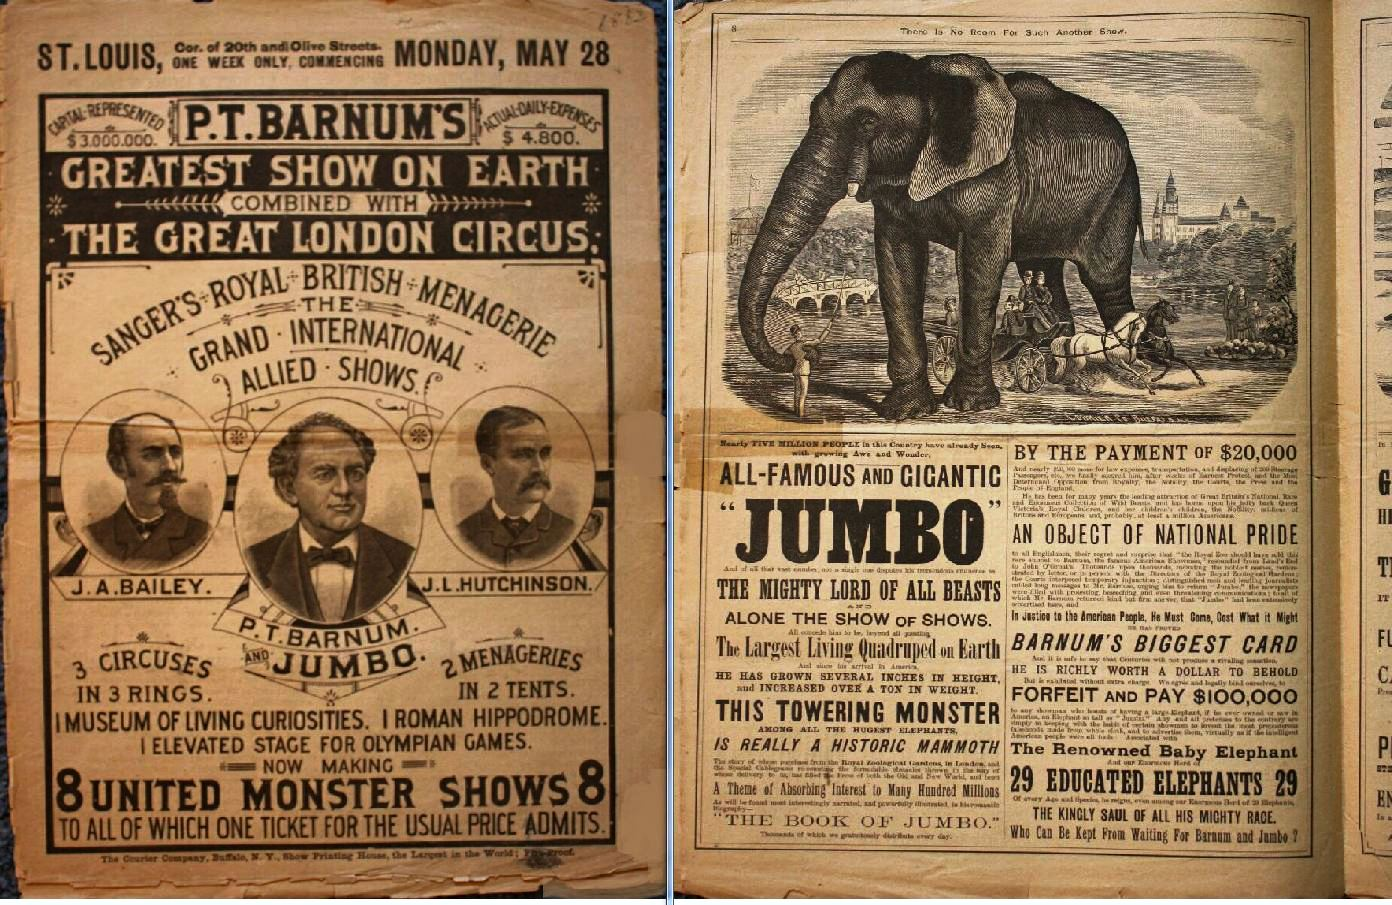 "This 1883 Greatest Show On Earth courier has portraits of the three principals on the cover—J.A. Bailey, P.T. Barnum & J.L. Hutchinson. Note that under Barnum's portrait in the center it says: P.T. Barnum & Jumbo. Inside the courier, an entire page is devoted to Jumbo and the other elephants in the show. Throughout the 16-page courier, there are mentions of Jumbo—""Wait for Barnum & Jumbo,"" ""No extra charge to see Jumbo"" and other enticing verbiage. A similar courier sold at auction in 2008 for $692.00."